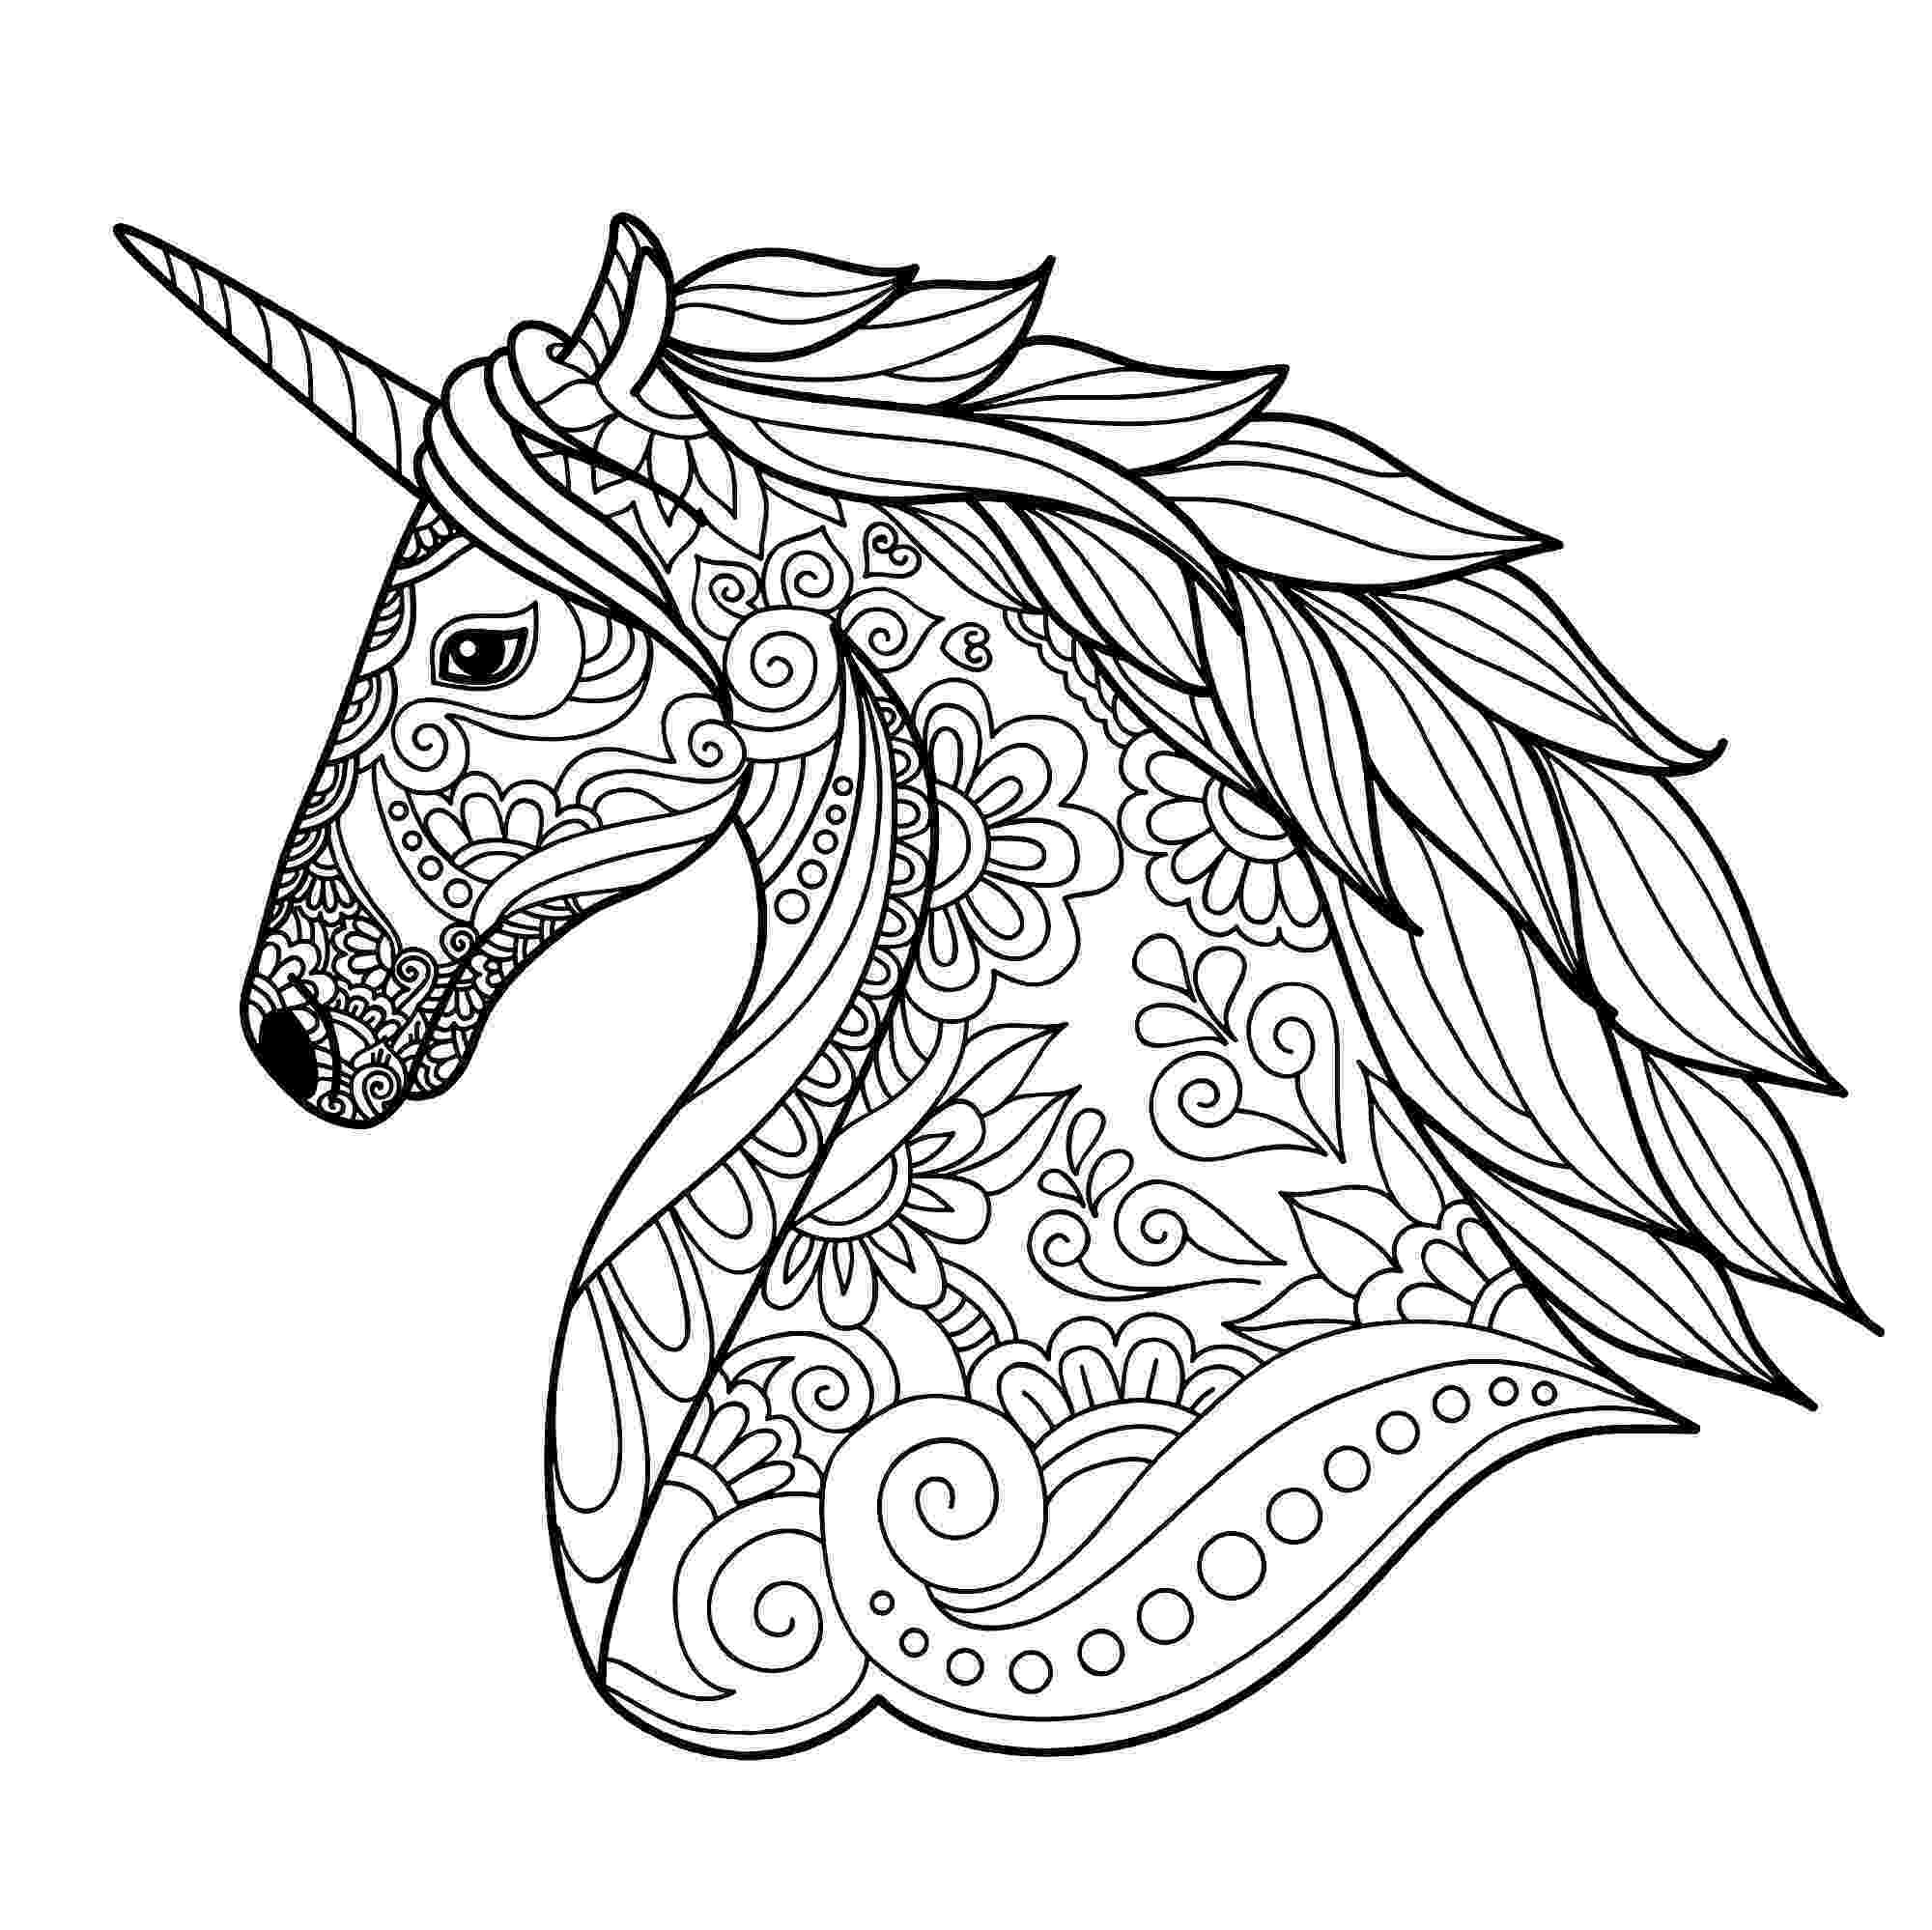 unicorn coloring pictures fairy unicorn unicorns adult coloring pages coloring unicorn pictures